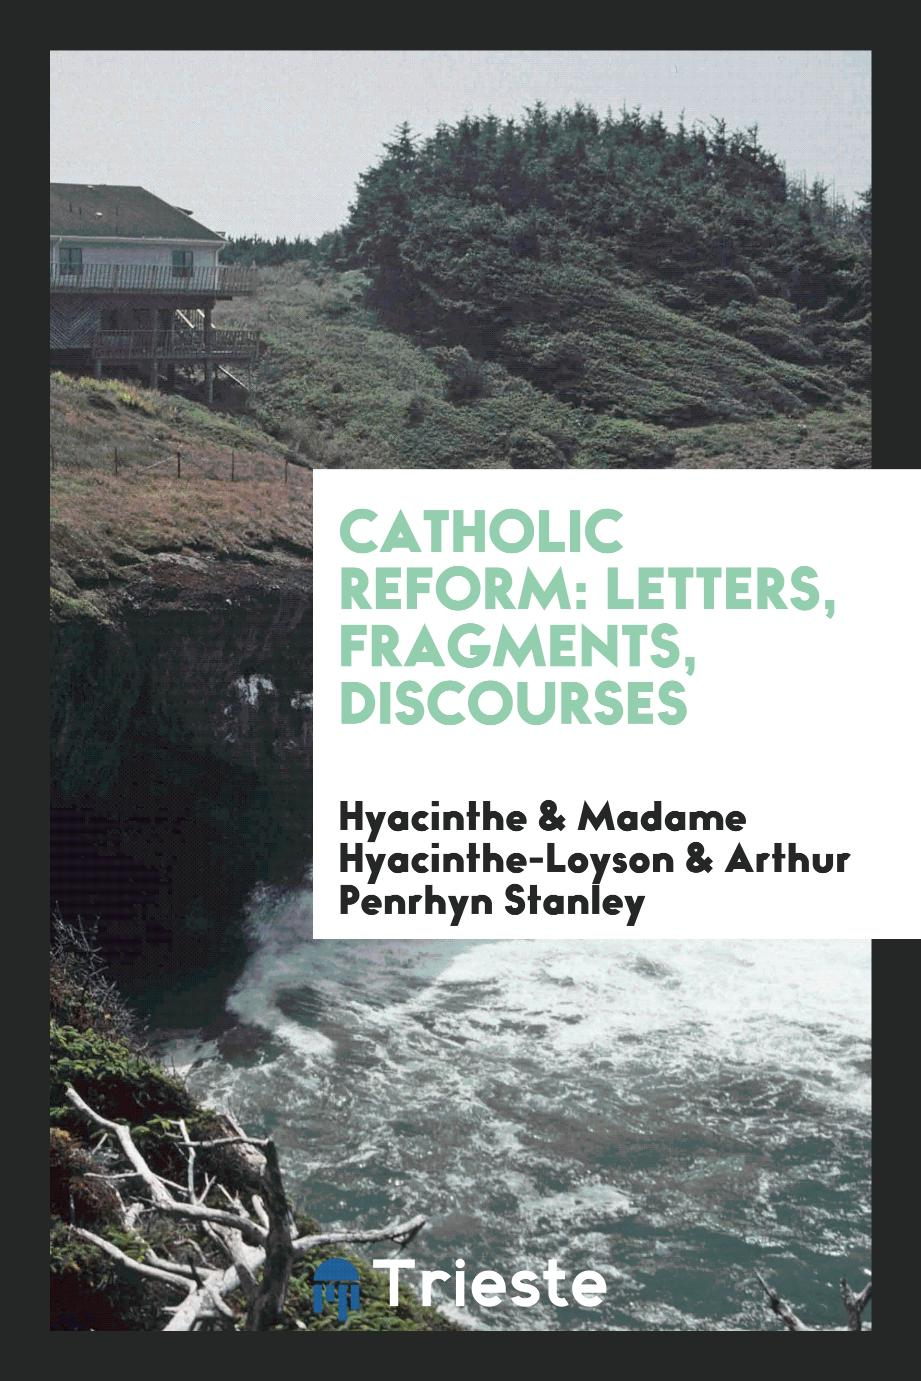 Catholic Reform: Letters, Fragments, Discourses